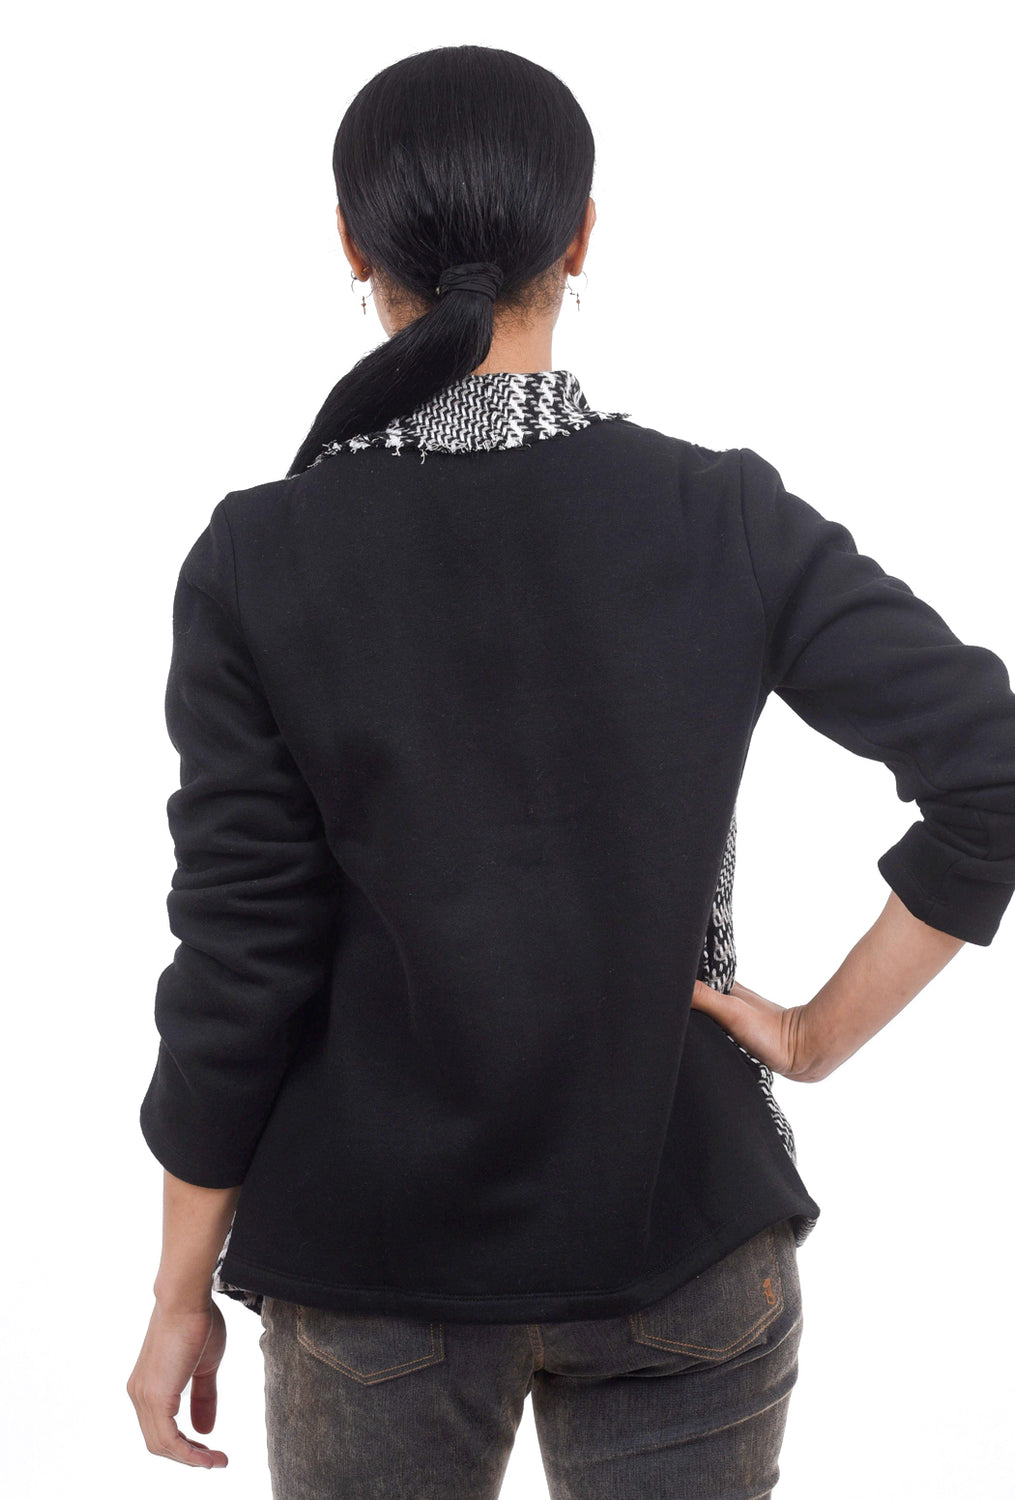 Mystree Frayed-Edge Combo Jacket, Black/White